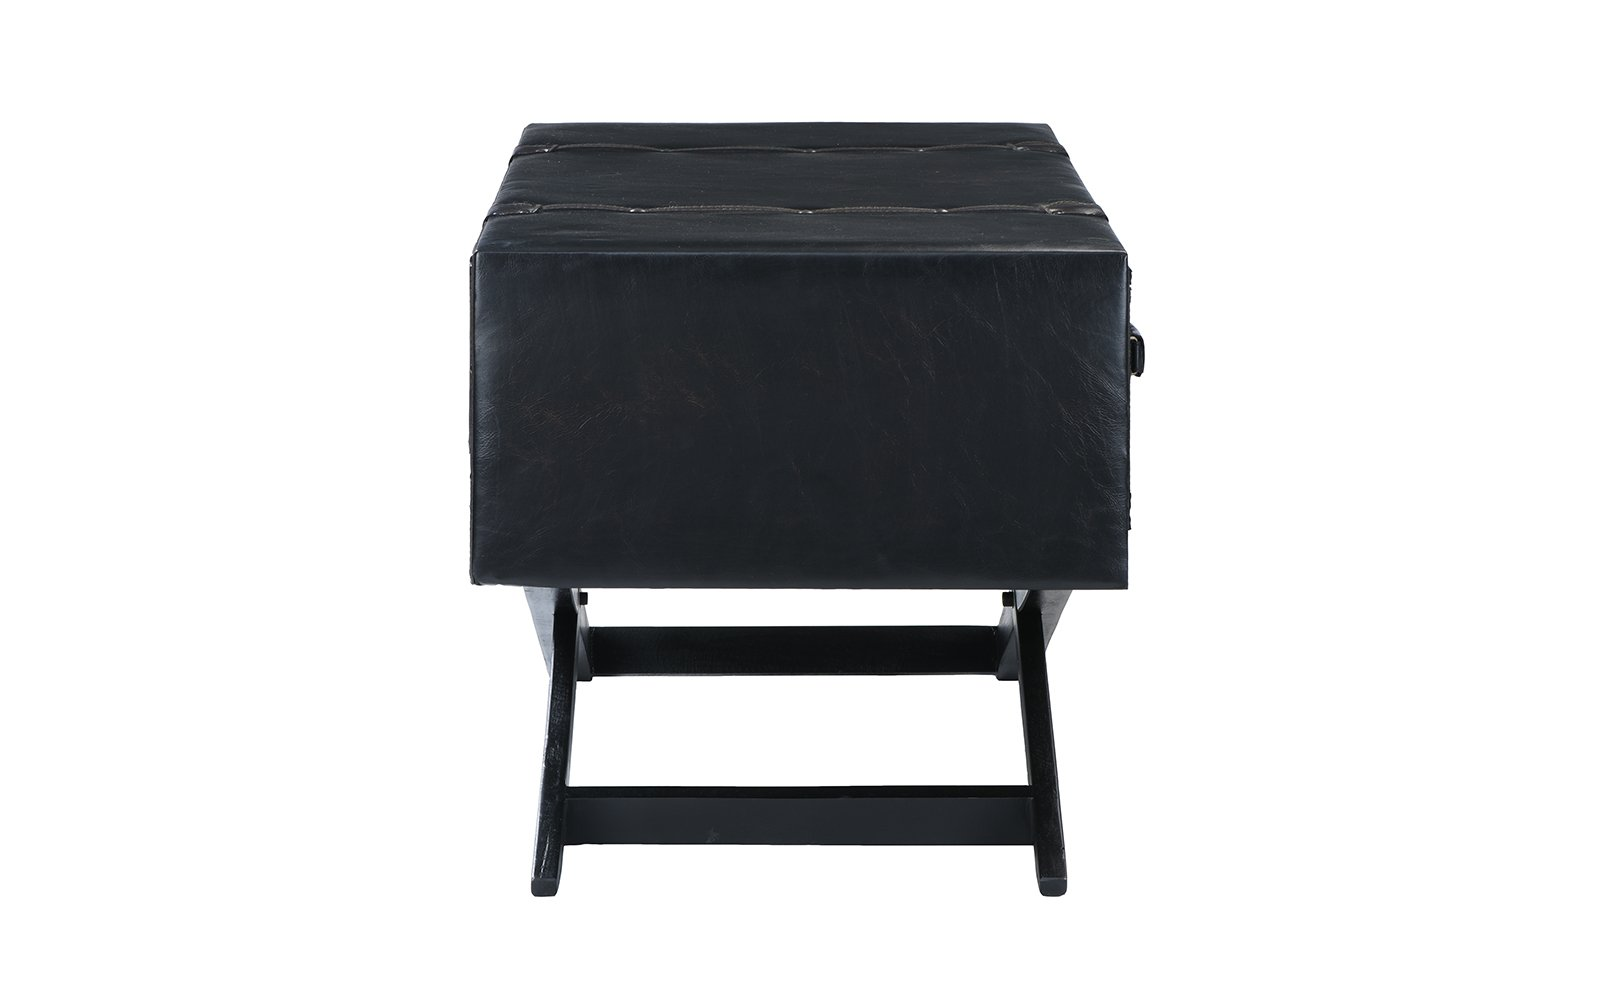 nicholas vintage faux leather accent table chest sofamania dbr white coffee set double pedal drum bedroom console wood with hairpin legs black metal outdoor end ikea hemnes